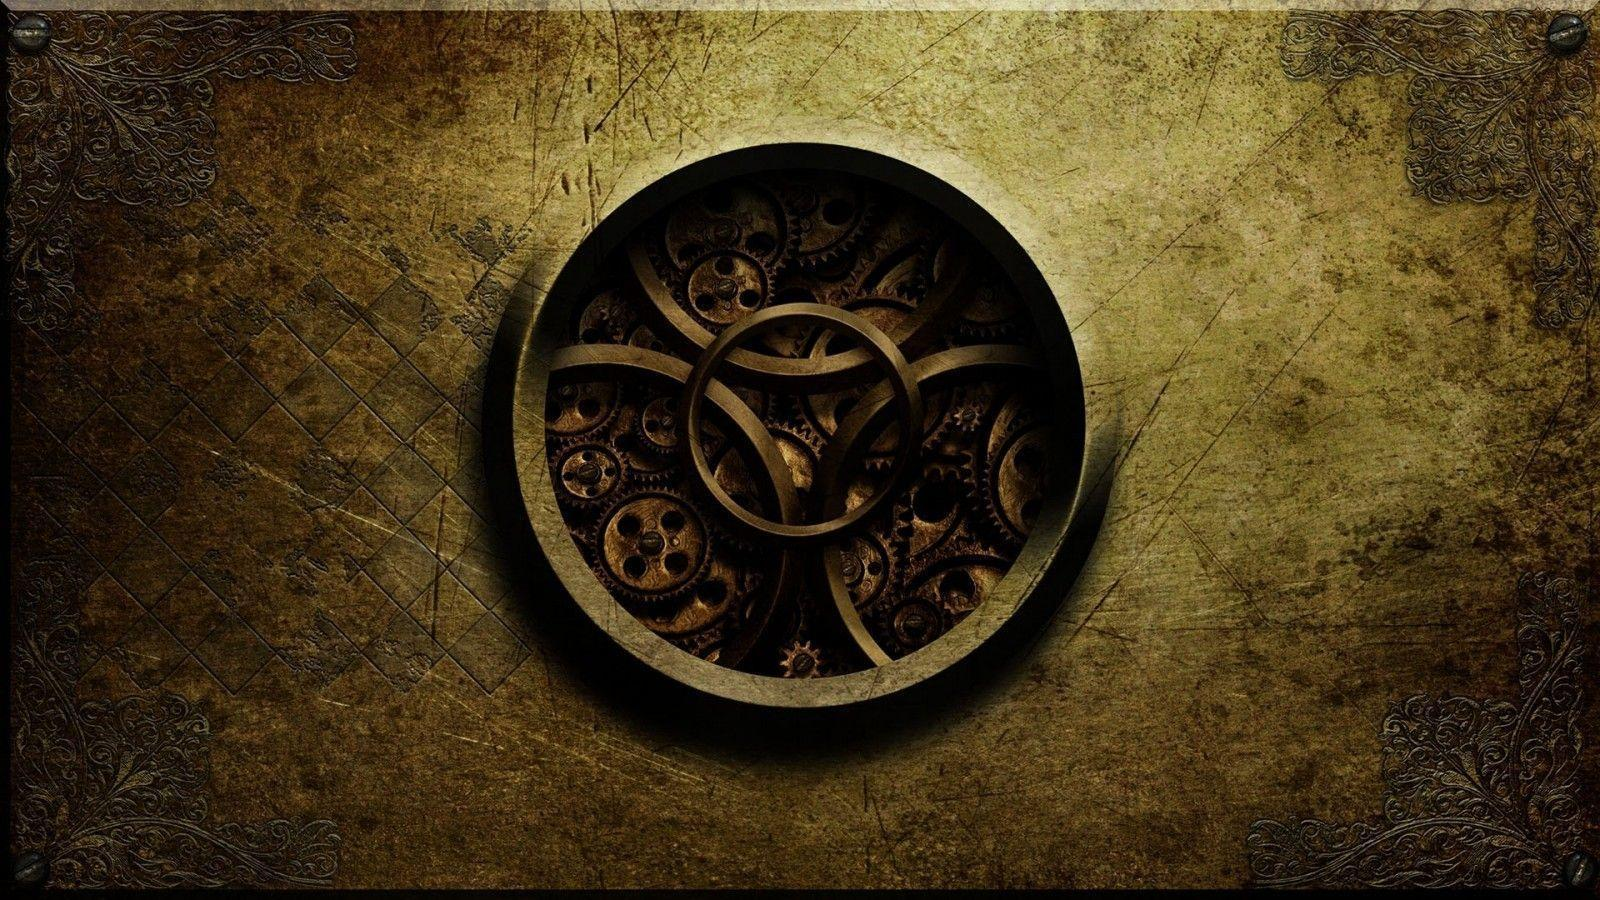 Steampunk Image Wallpapers 15